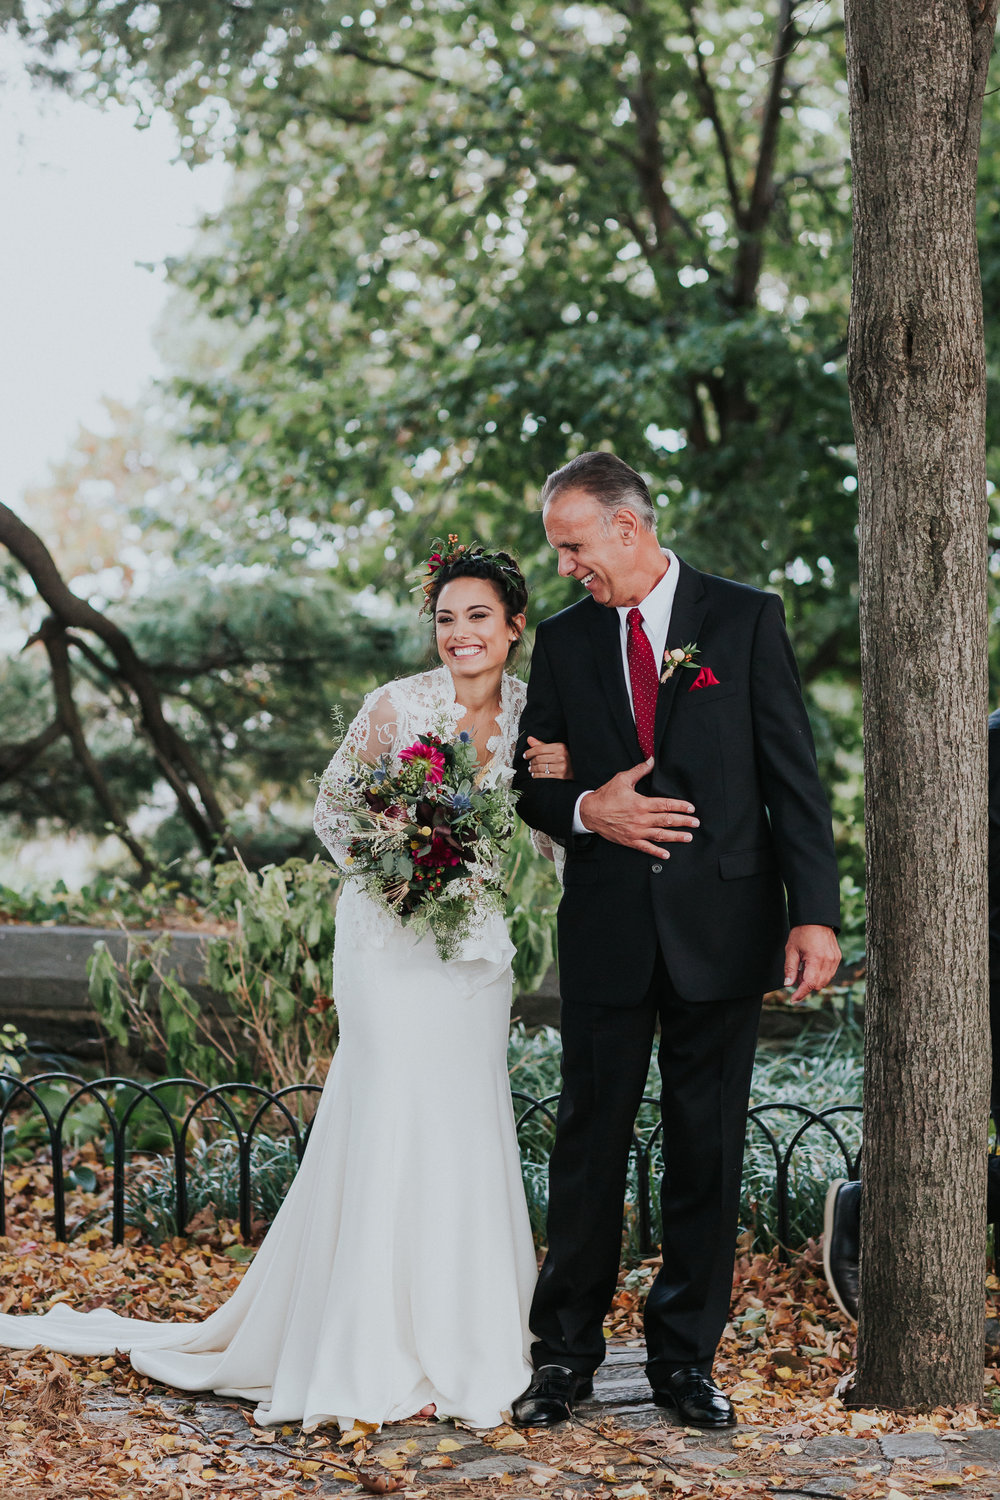 New-Leaf-Cafe-Fort-Tryon-Park-New-York-Documentary-Wedding-Photographer-43.jpg